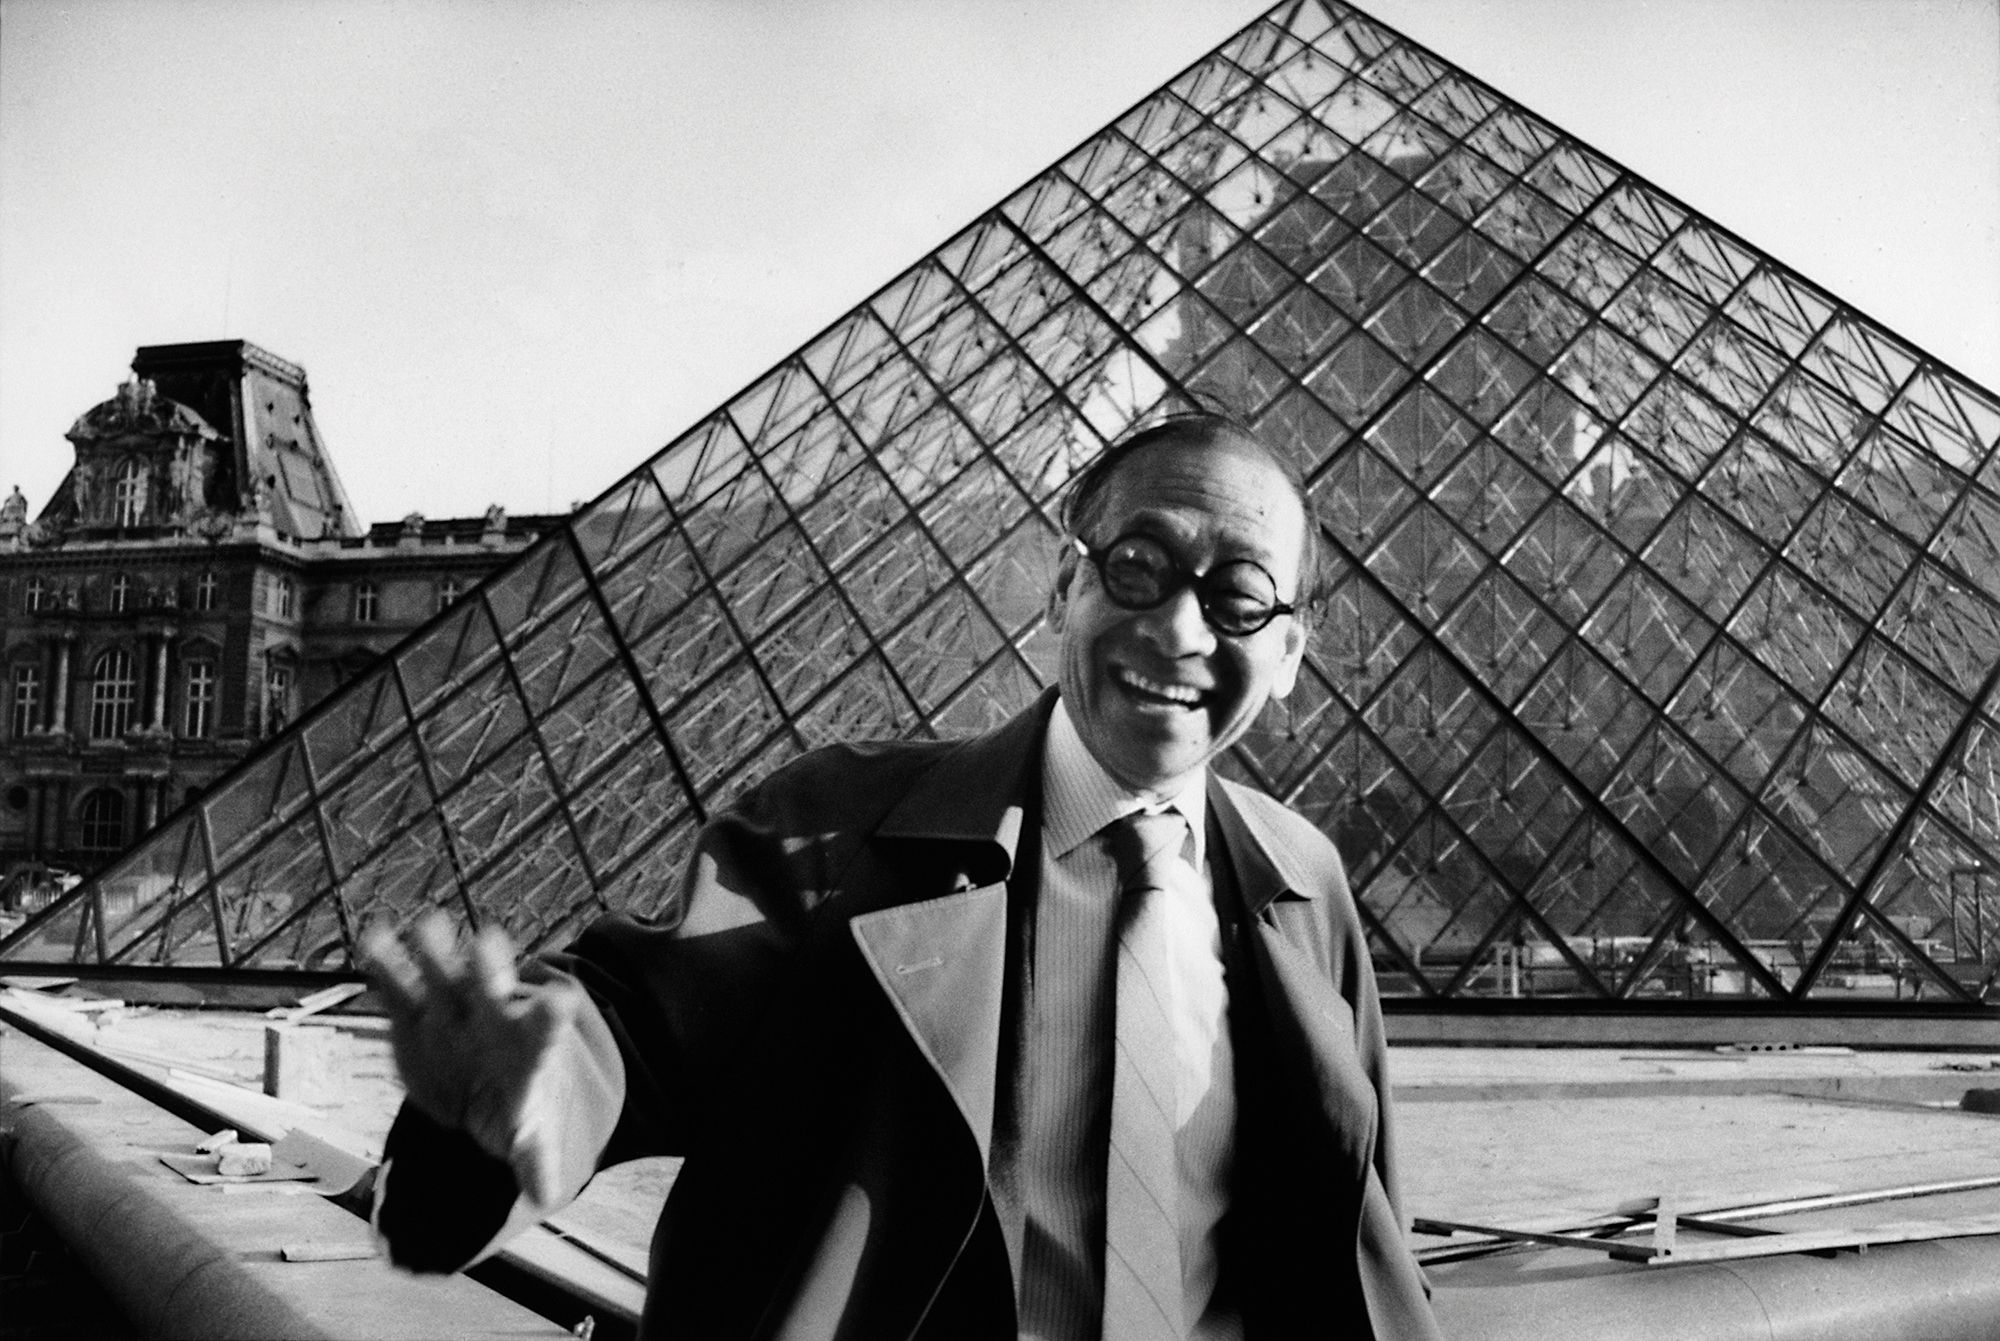 How IM Pei Became One Of The World's Greatest Architects And His Most Iconic Works